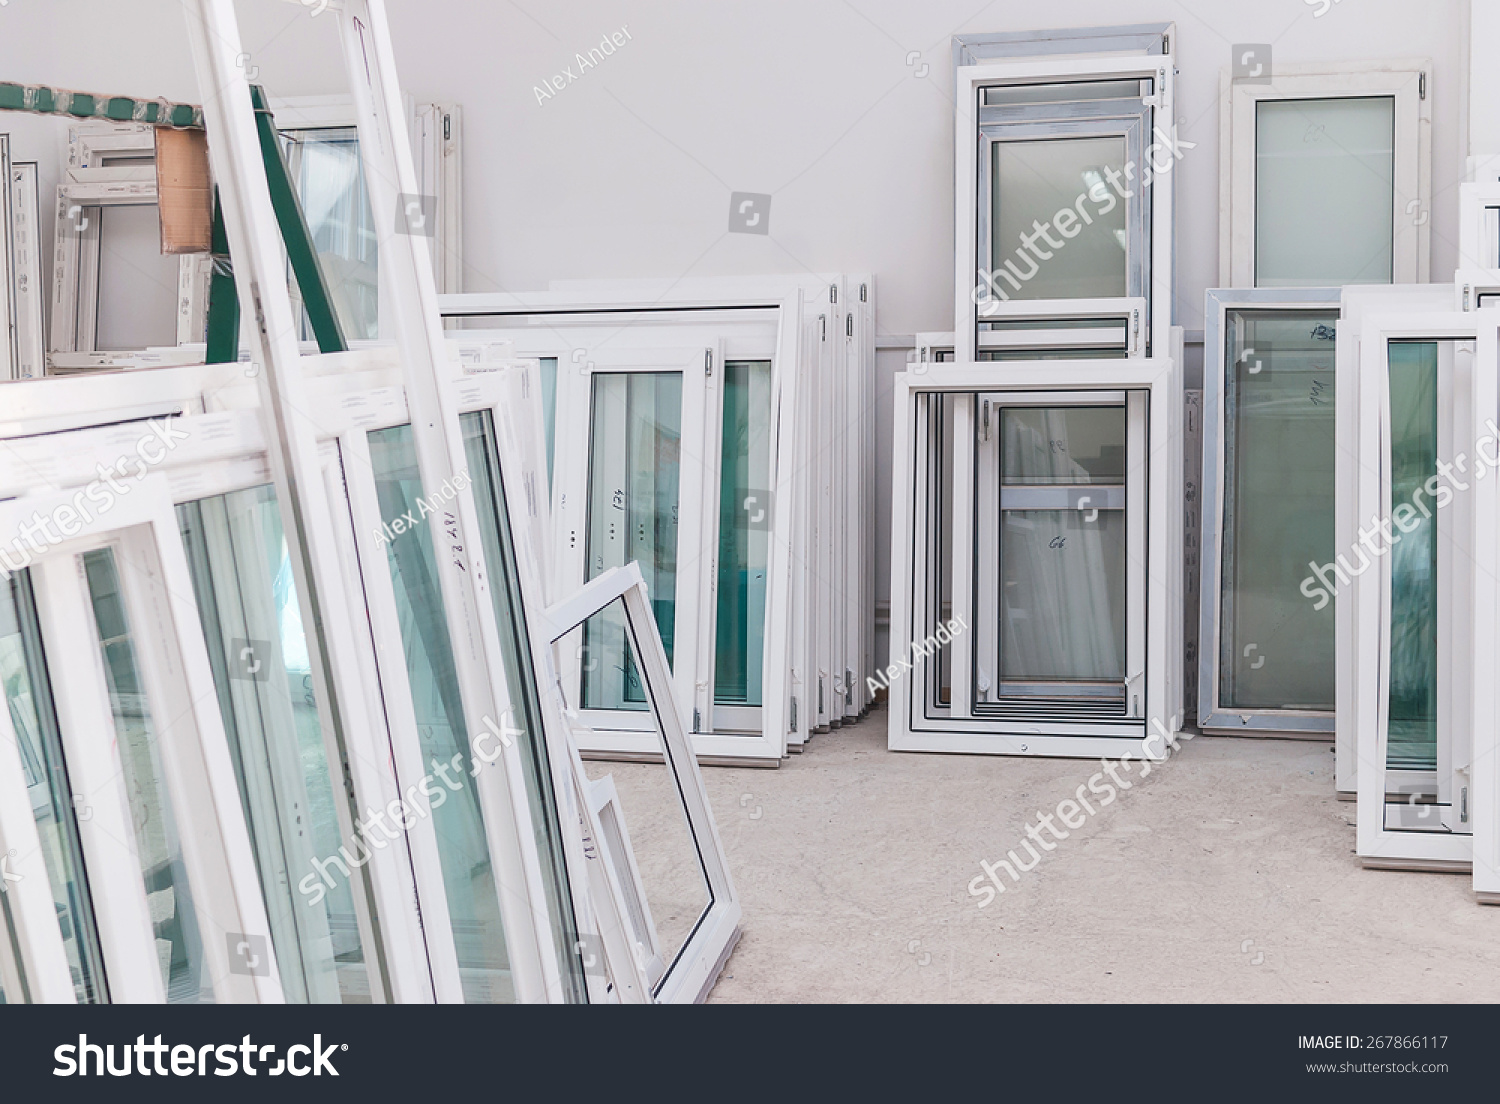 PVC Windows Doors Manufacturing Window Frame Stock Photo (Royalty ...